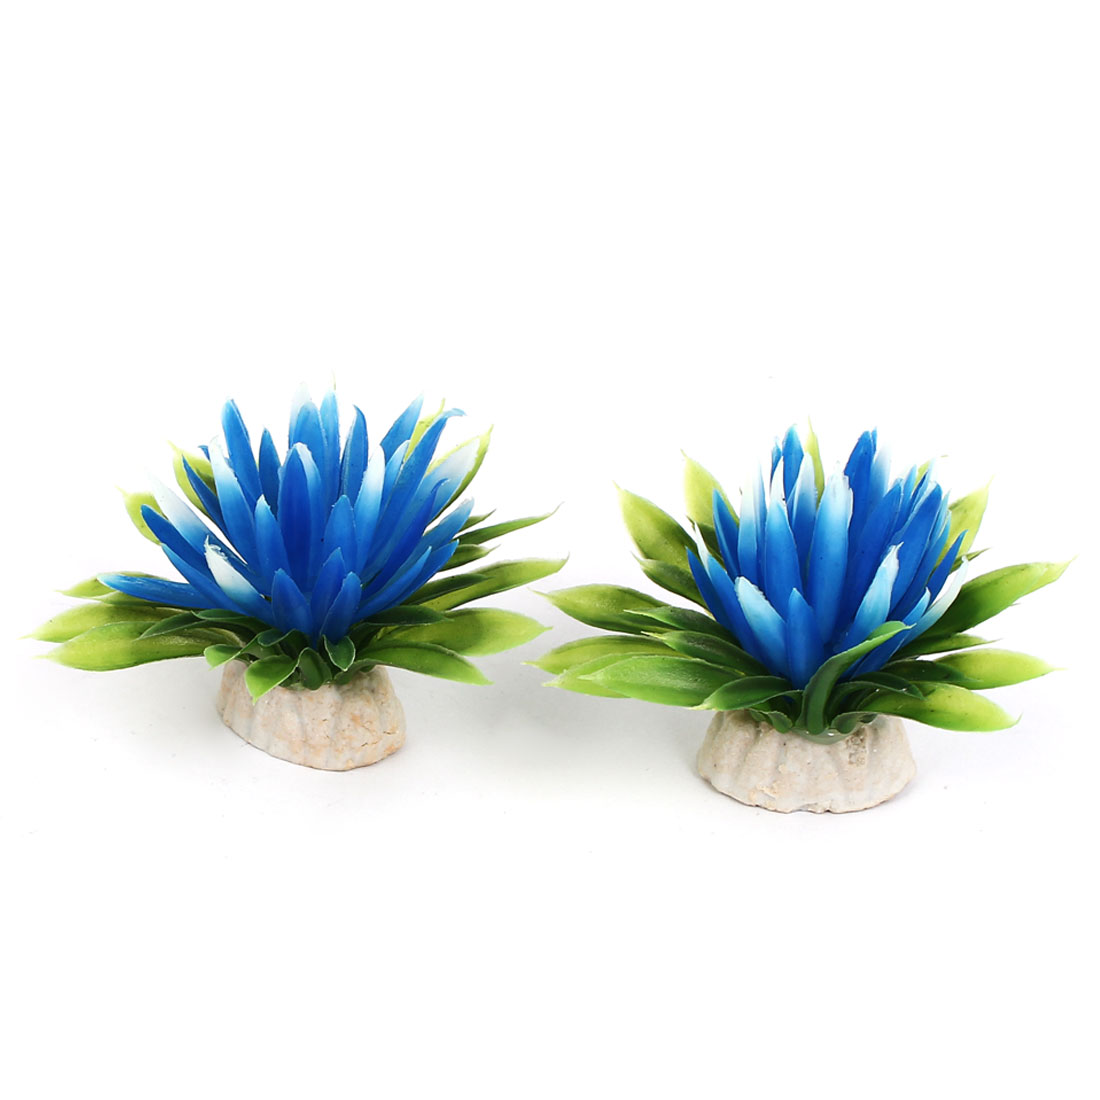 Aquarium Fish Tank Bowl Artificial Fake Flower Plant Decor Ornament Blue 2Pcs